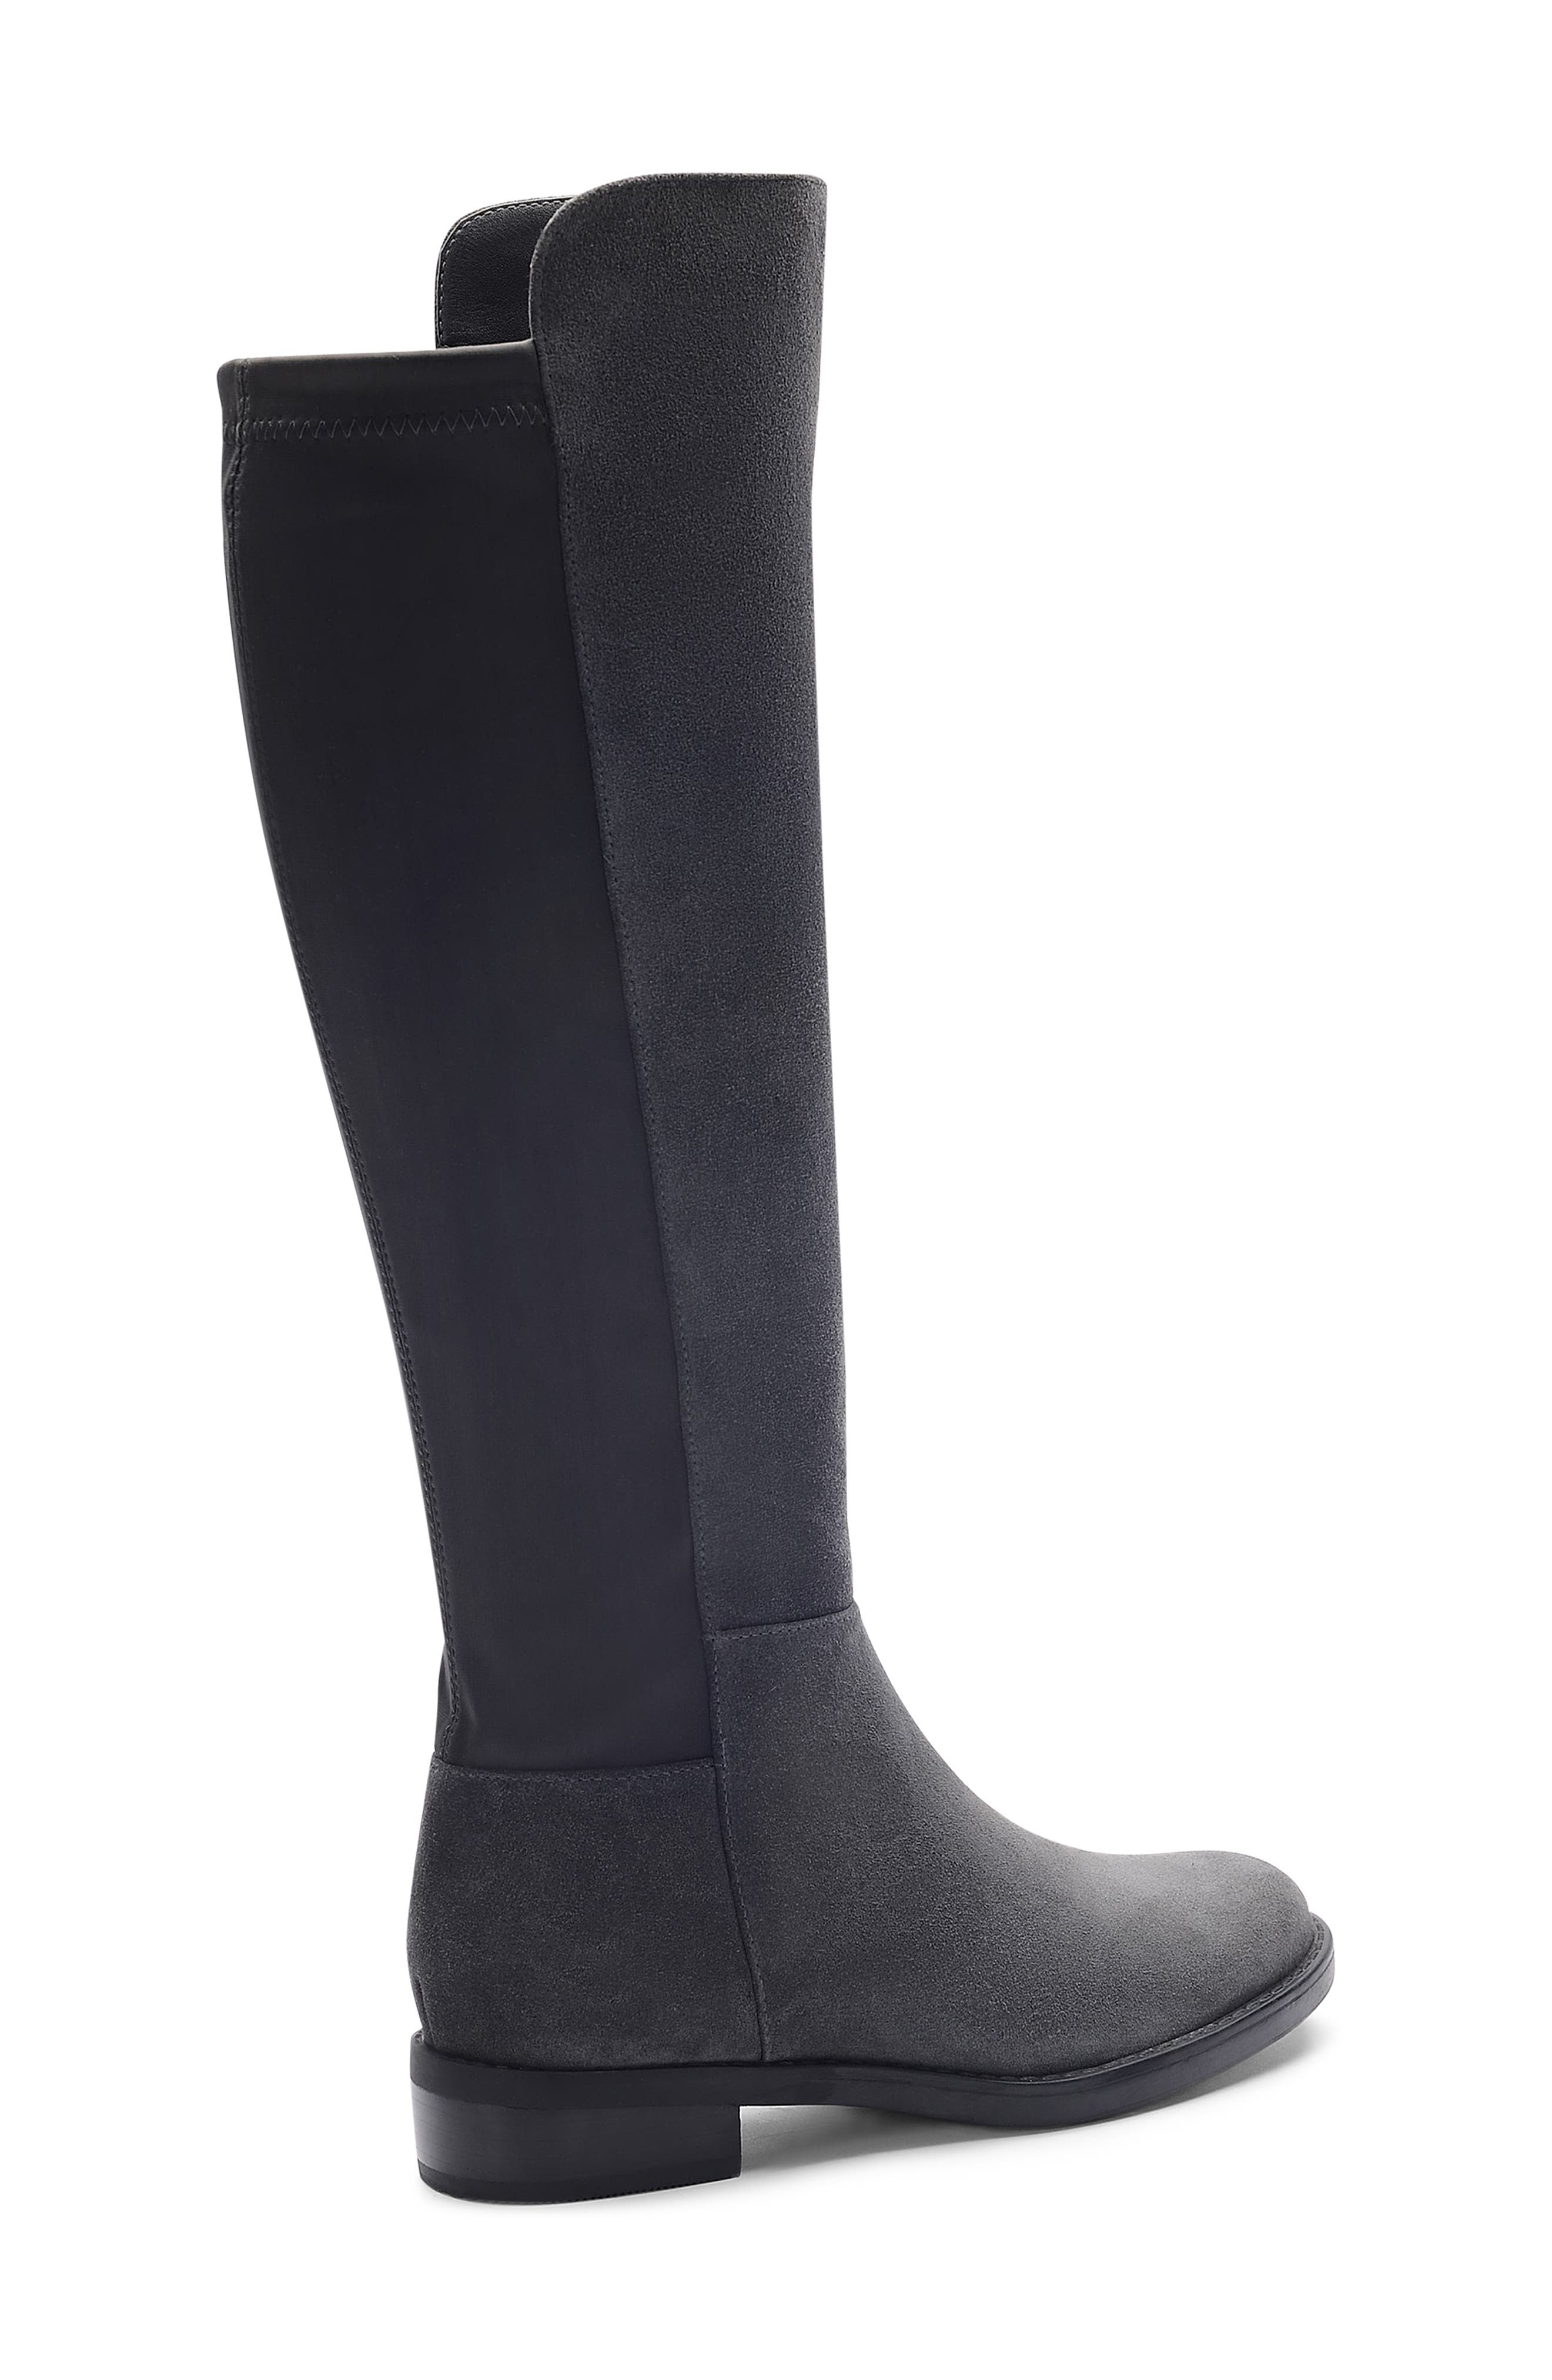 Ellie Waterproof Knee High Riding Boot,                             Alternate thumbnail 7, color,                             DARK GREY SUEDE